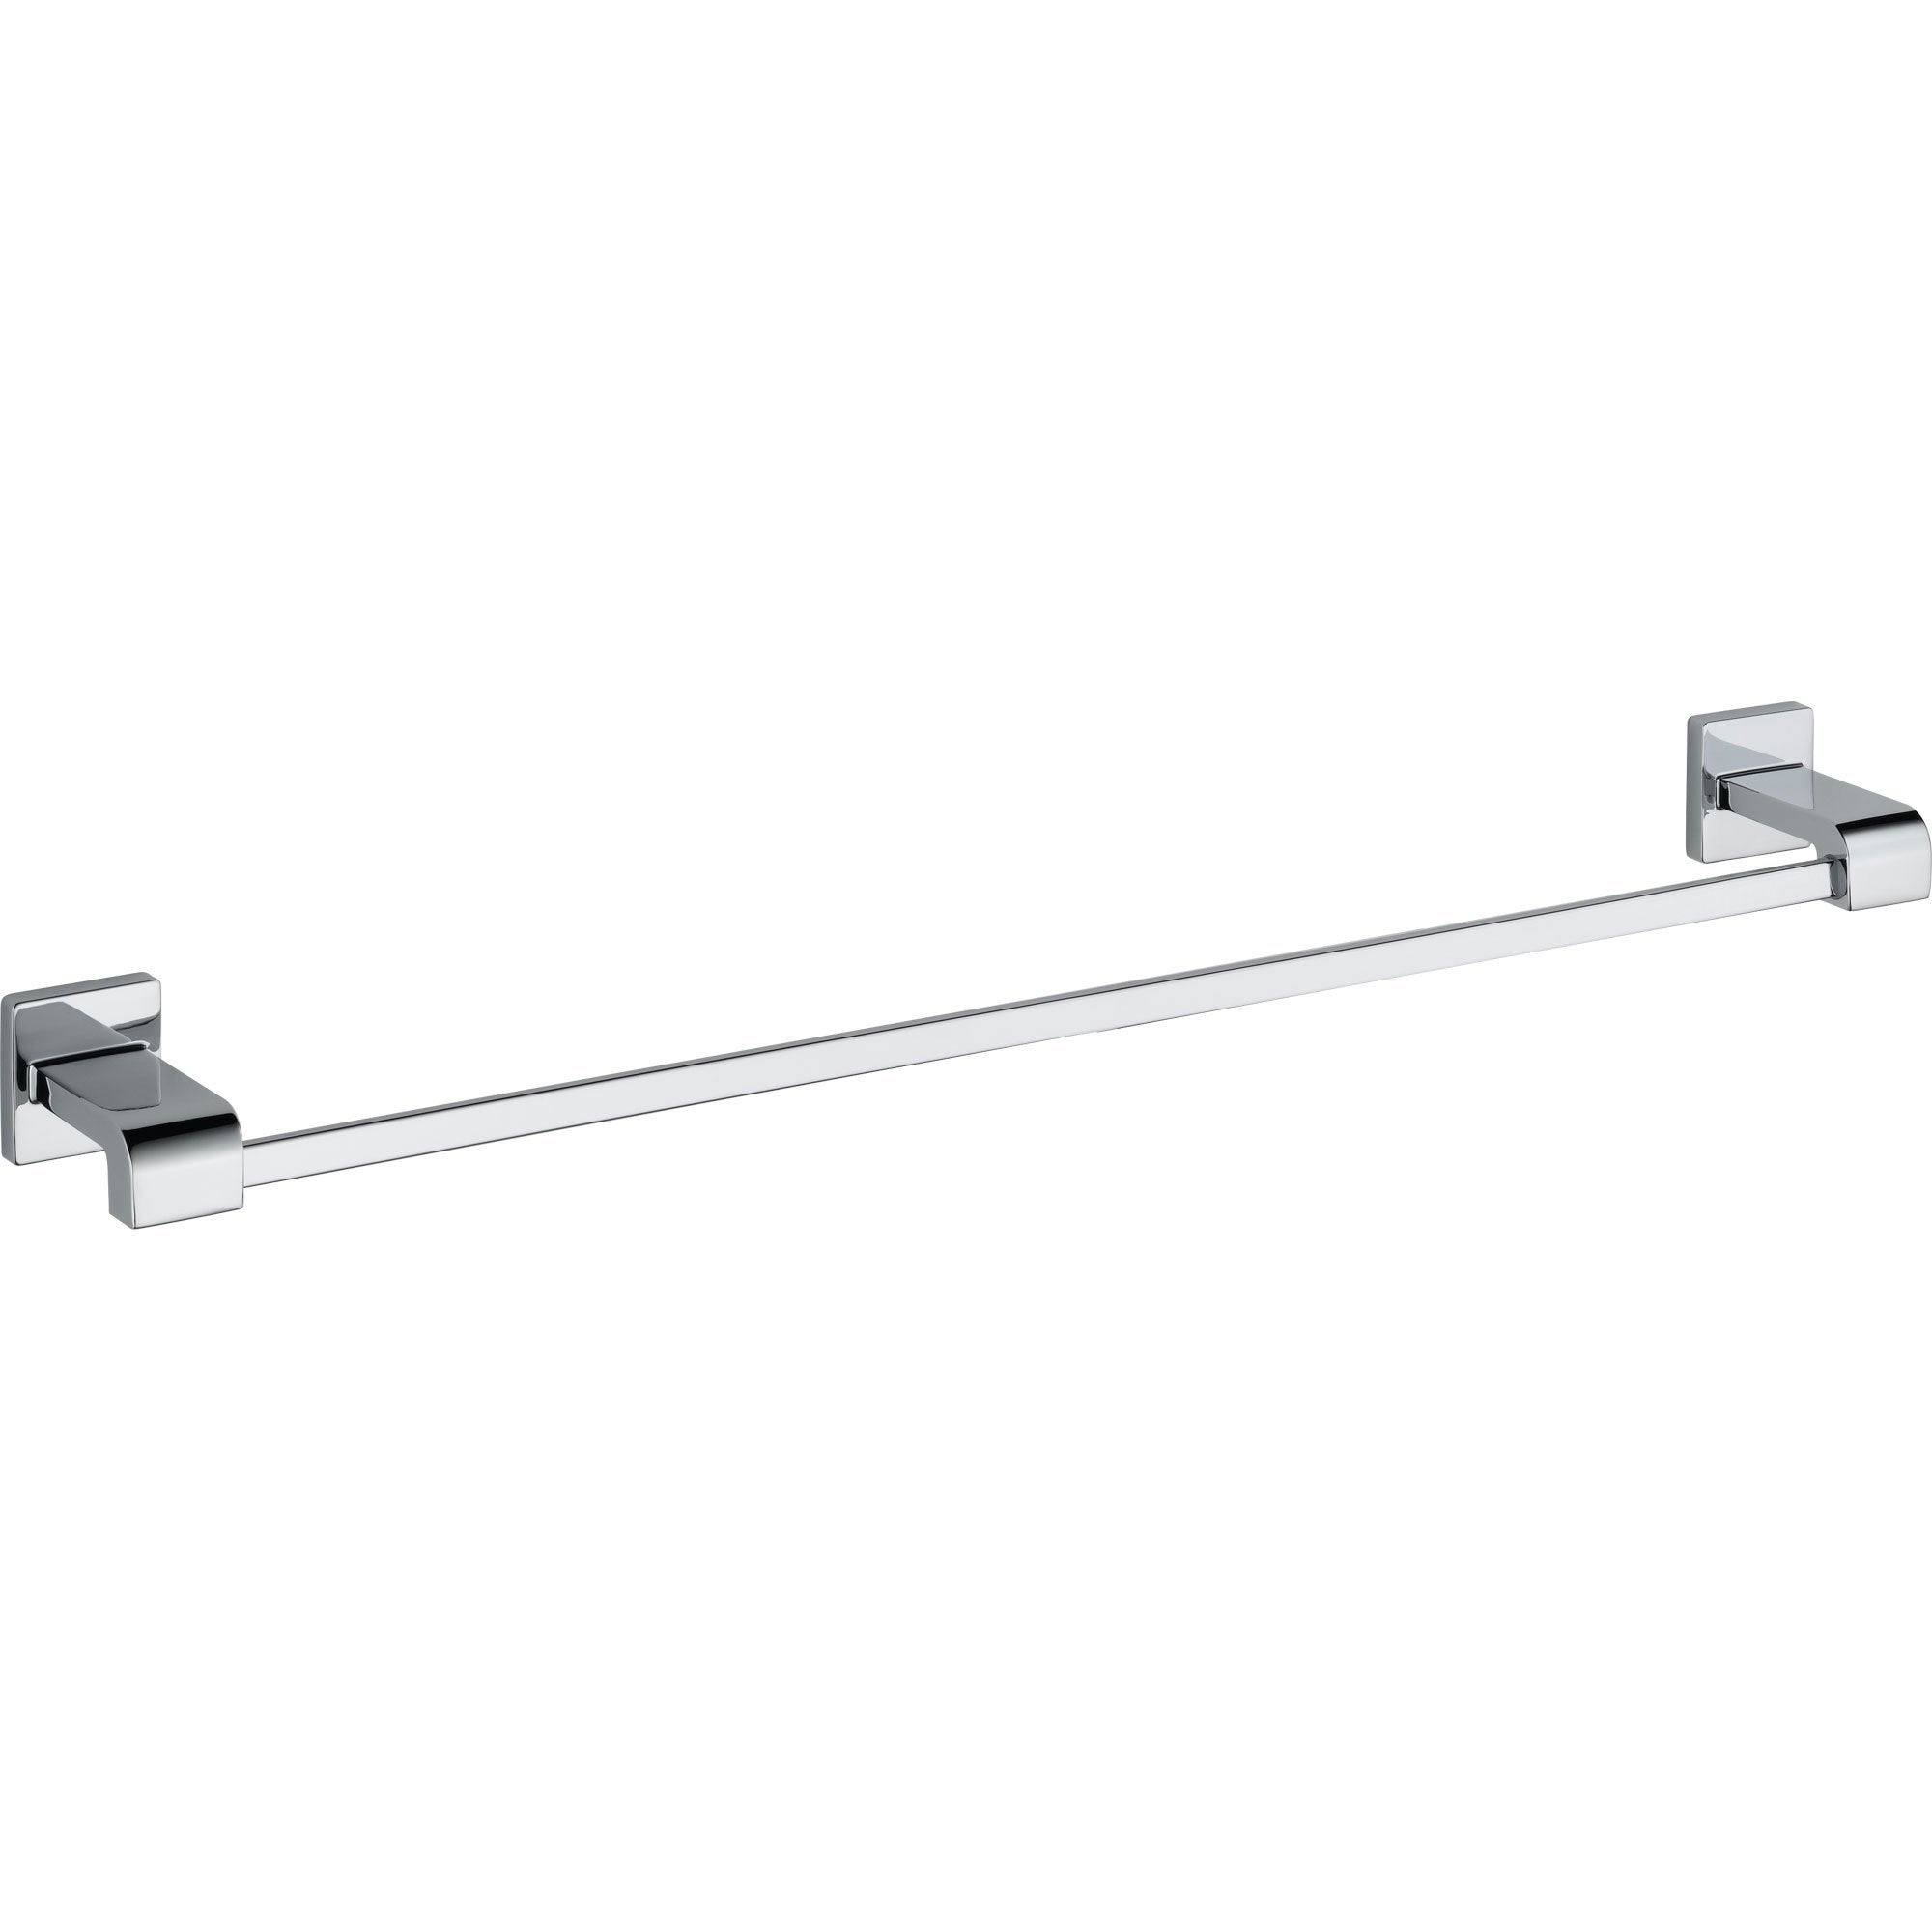 Delta Arzo 30 inch Modern Chrome Single Towel Bar 638719